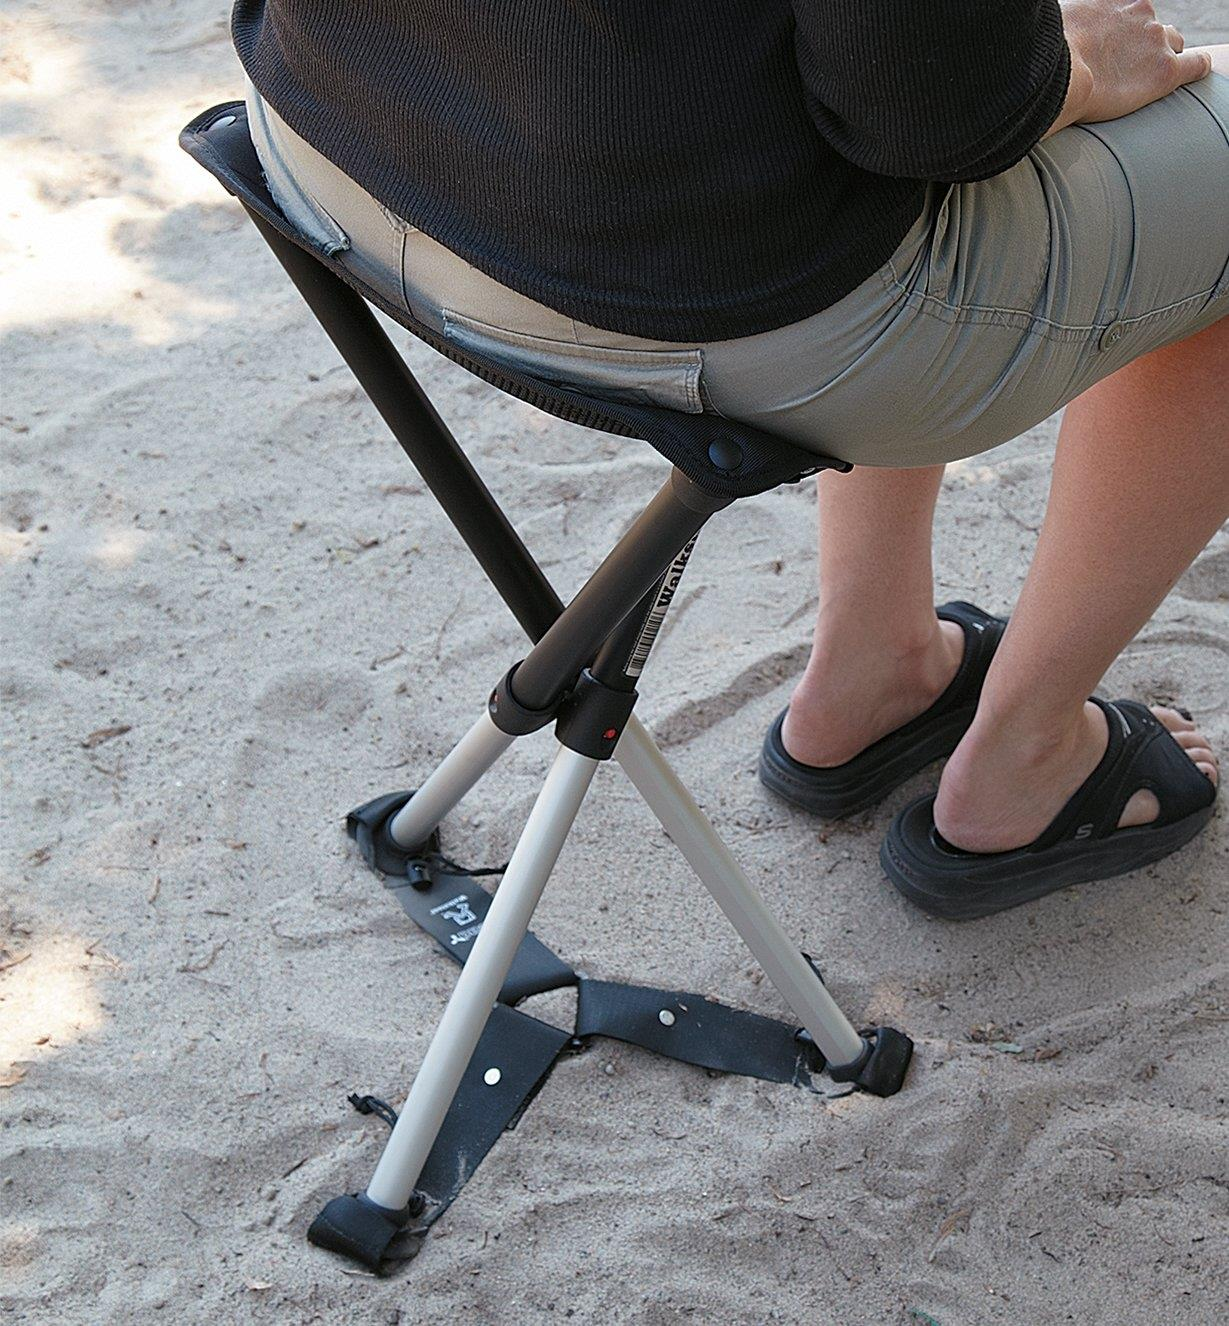 A woman sits on a Walkstool Comfort with the Walkstool Steady attached, sold separately.